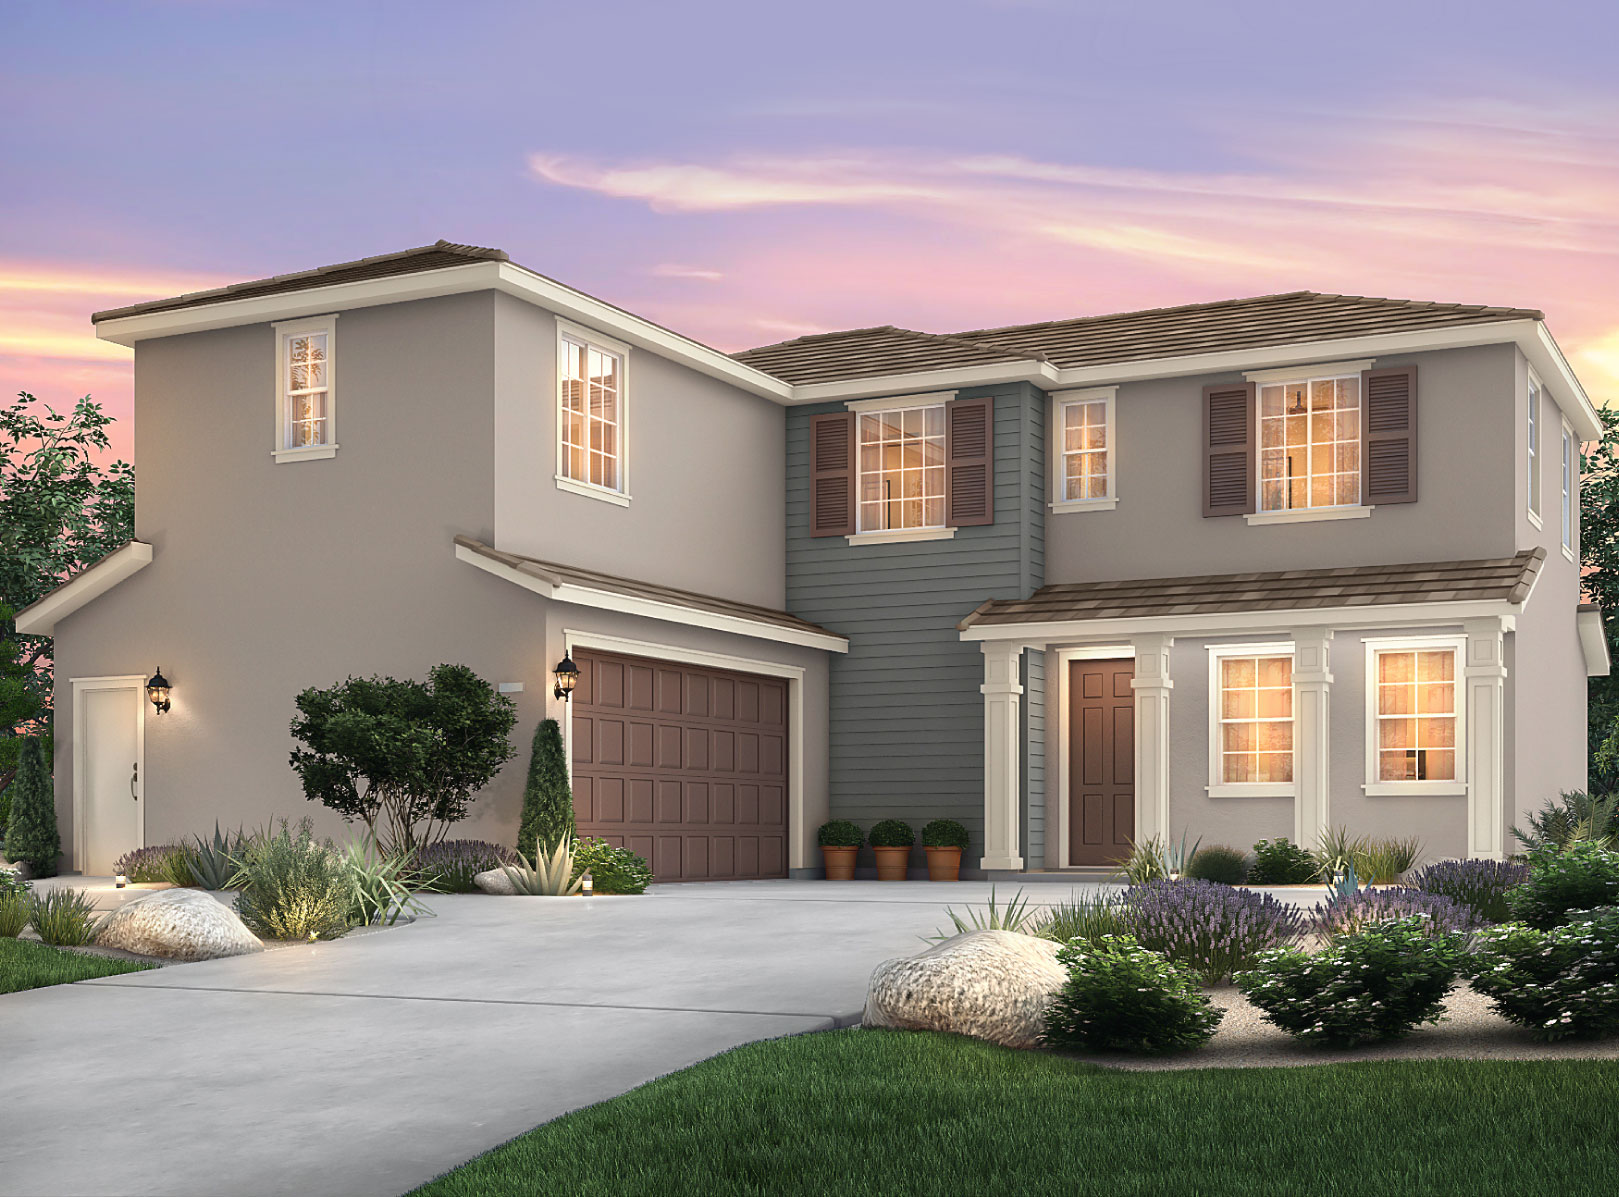 New single family homes for sale in rohnert park ca at for State college home builders